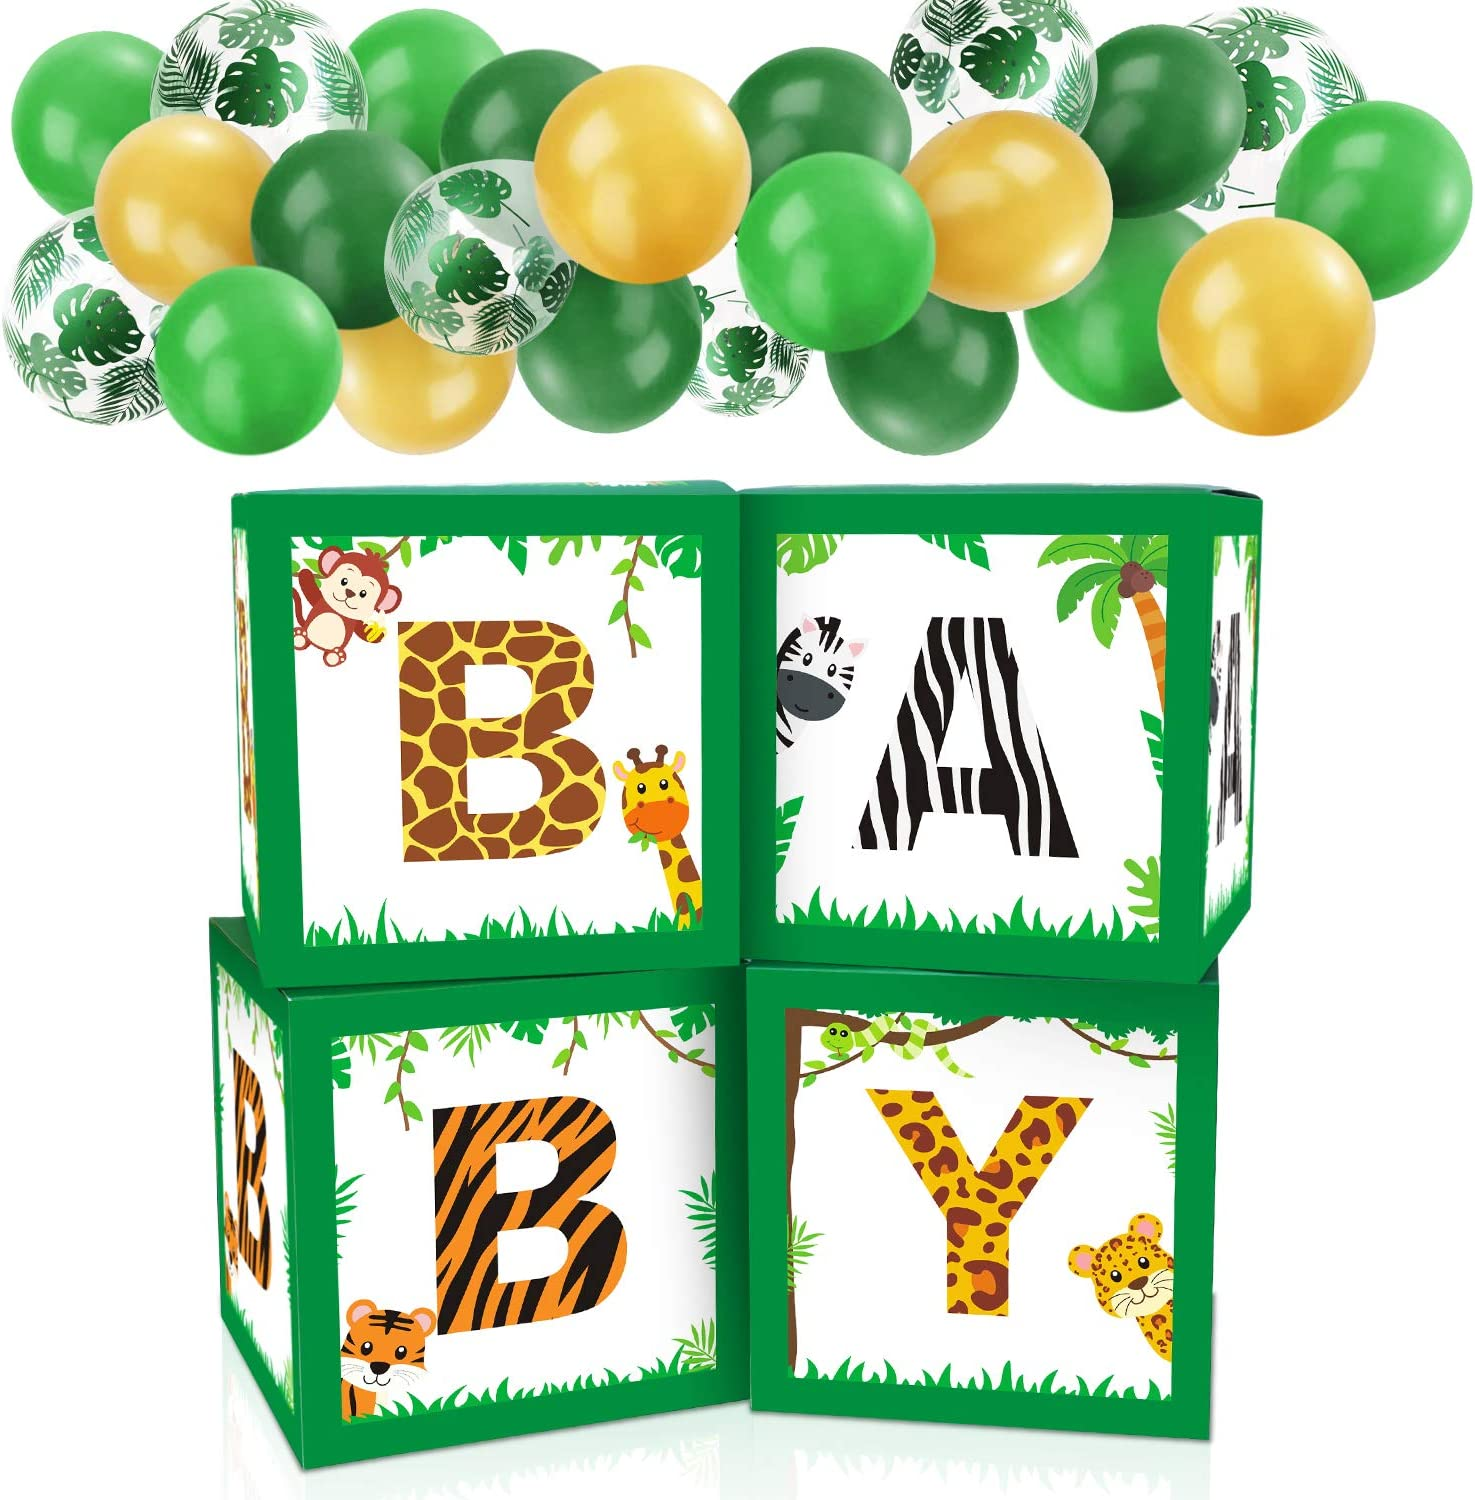 Baby Shower Decorations Balloon Box Safari Jungle Animals Baby Shower Boxes Decor for Gender Reveal Party Supplies Birthday Party Decorations Boy Girl Baby Blocks Decorations